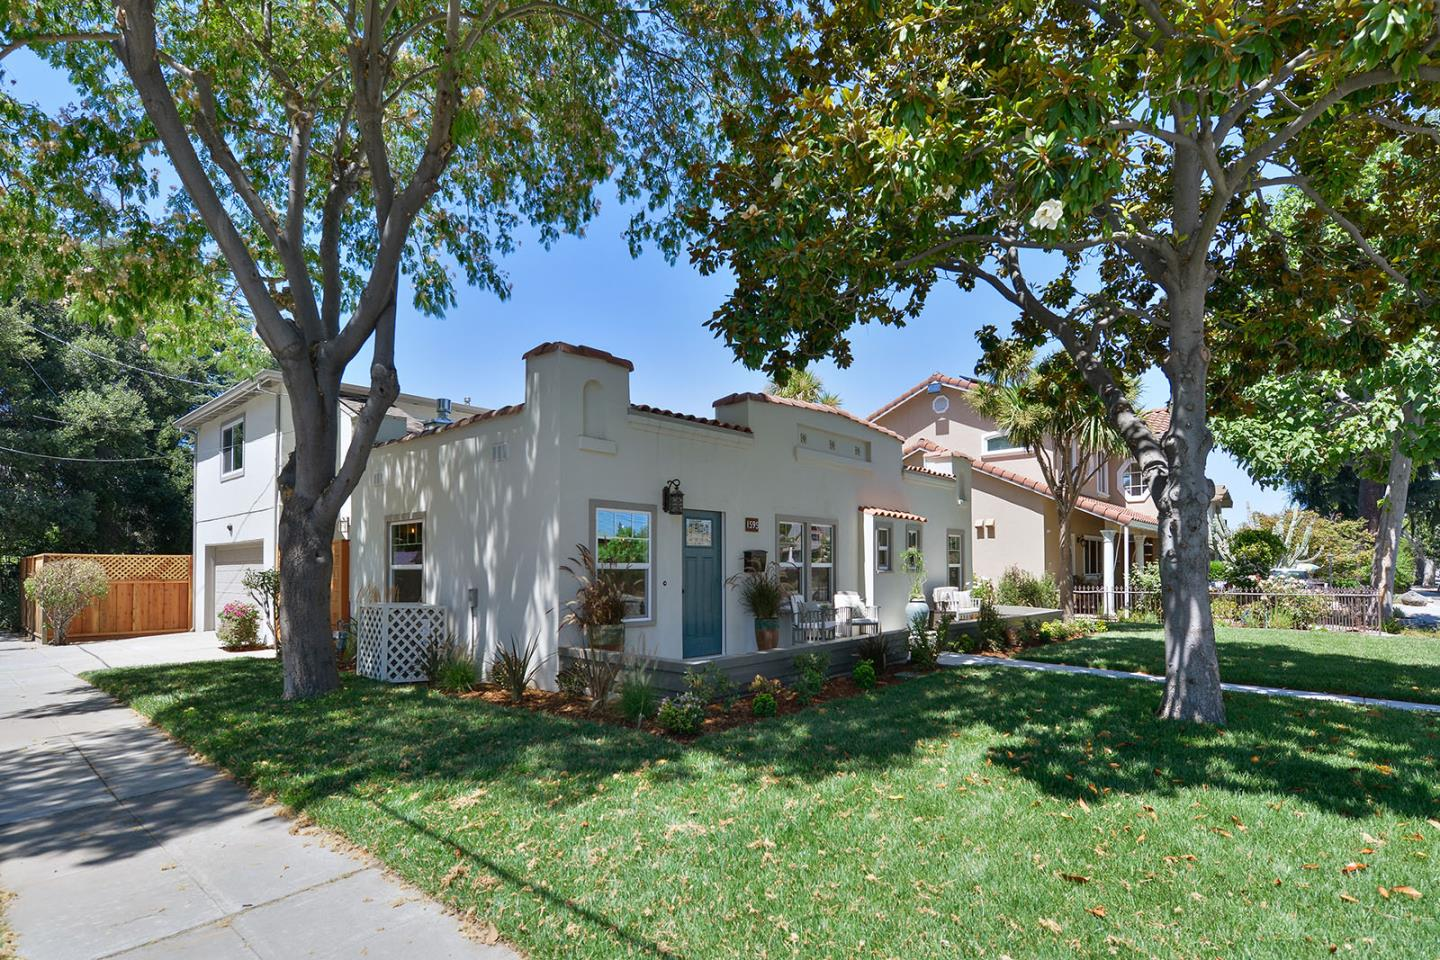 Additional photo for property listing at 1595 Mckendrie Street  San Jose, 加利福尼亞州 95126 美國